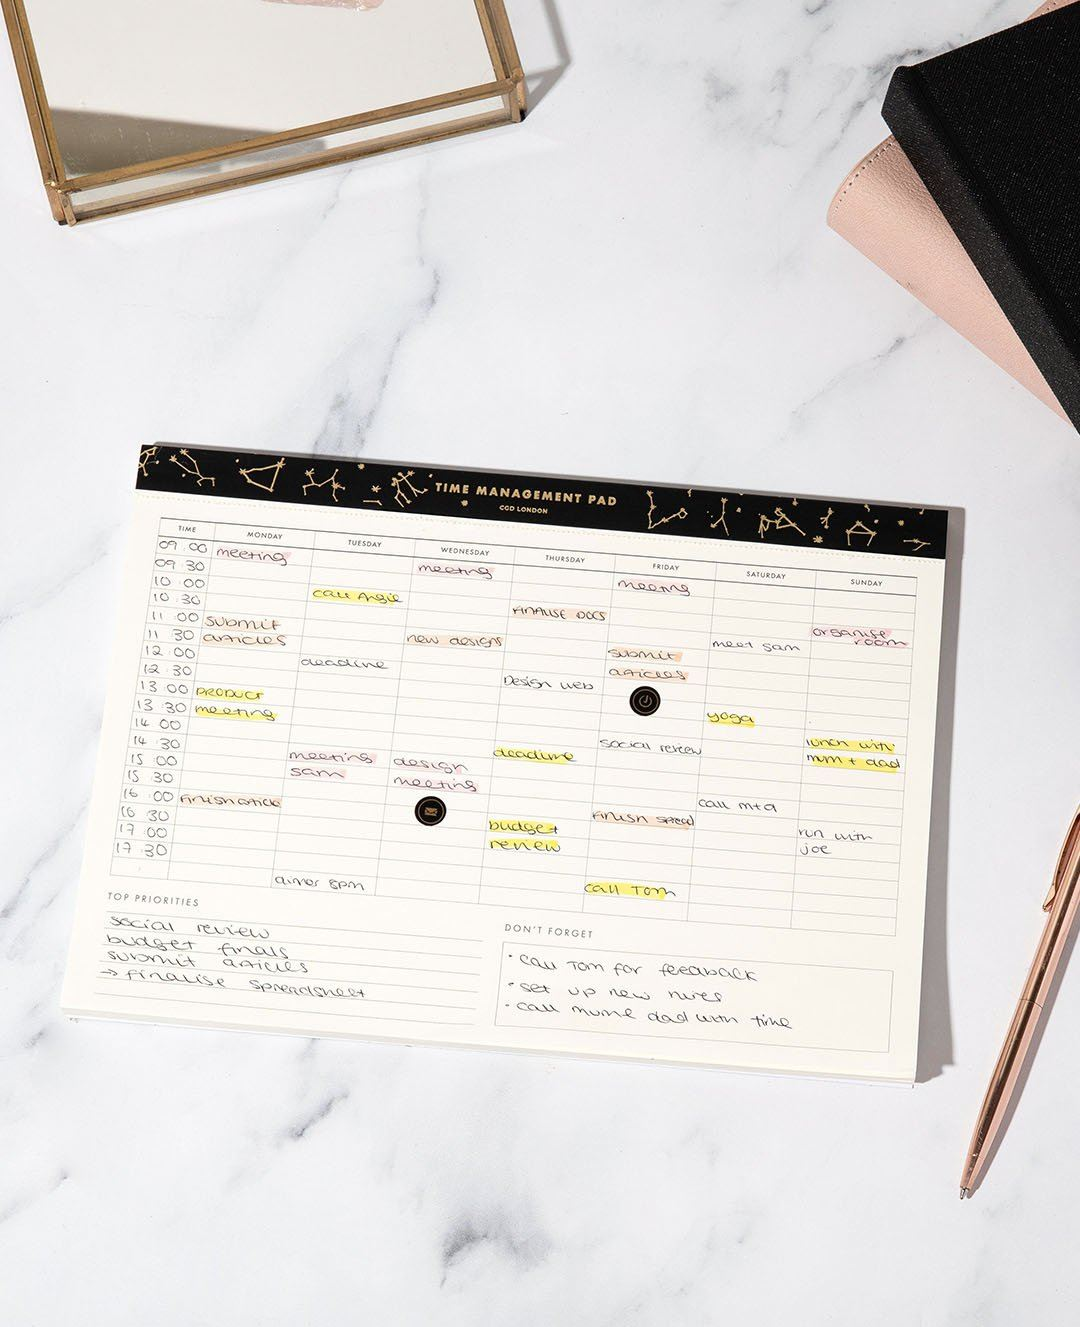 Time Management Pad - CGD LONDON